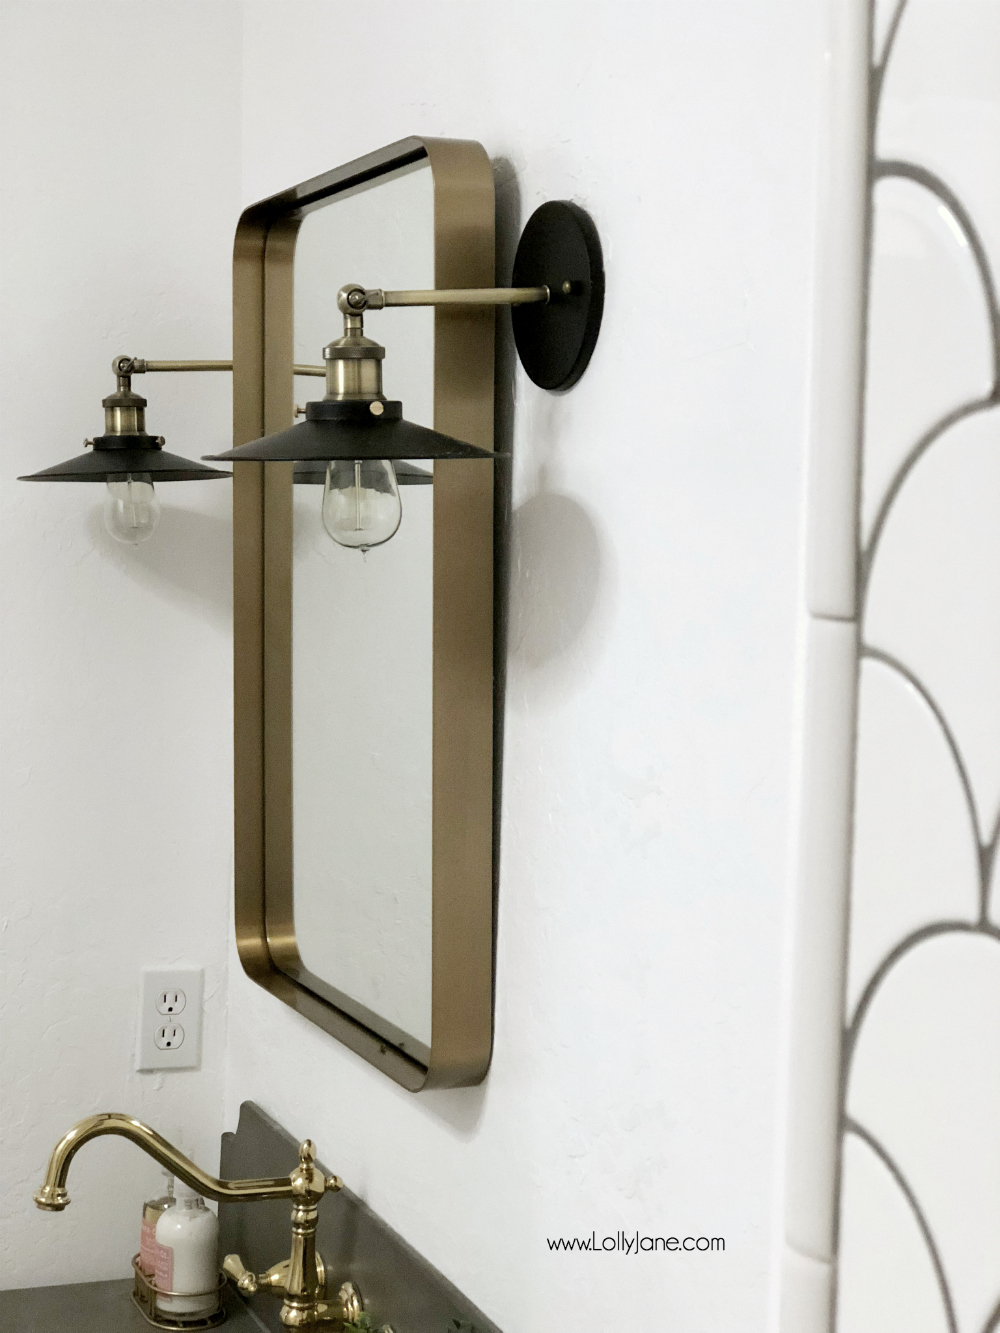 Love the pops of gold, bronze, and GLAM in this farmhouse bathroom! So pretty!